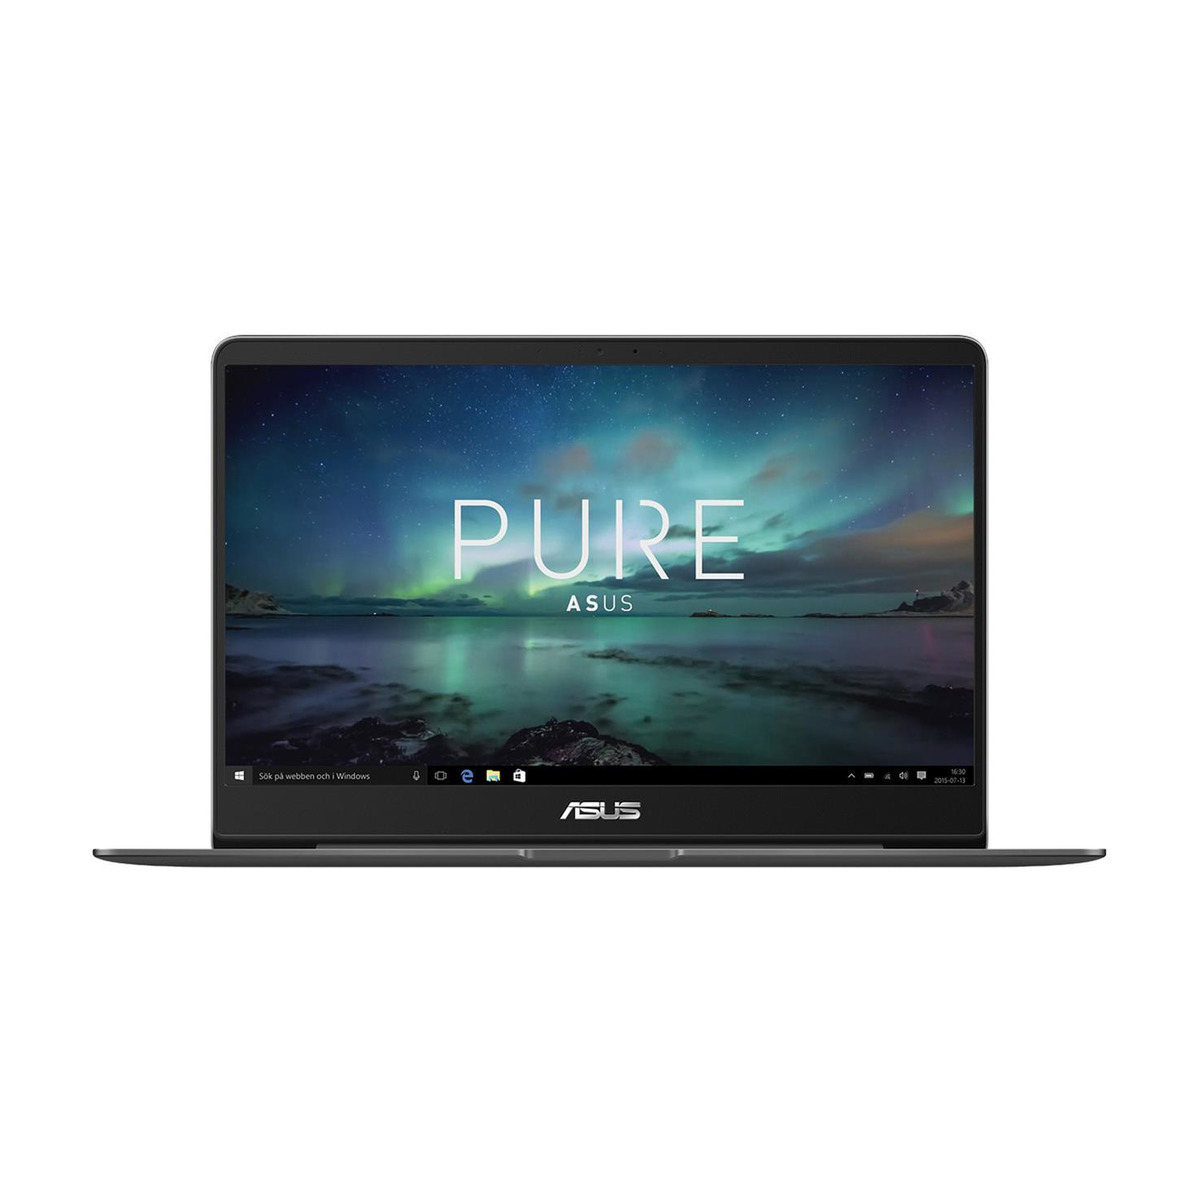 ASUS ZENBOOK UX430UAR PURE2 14 LAPTOP Power.no